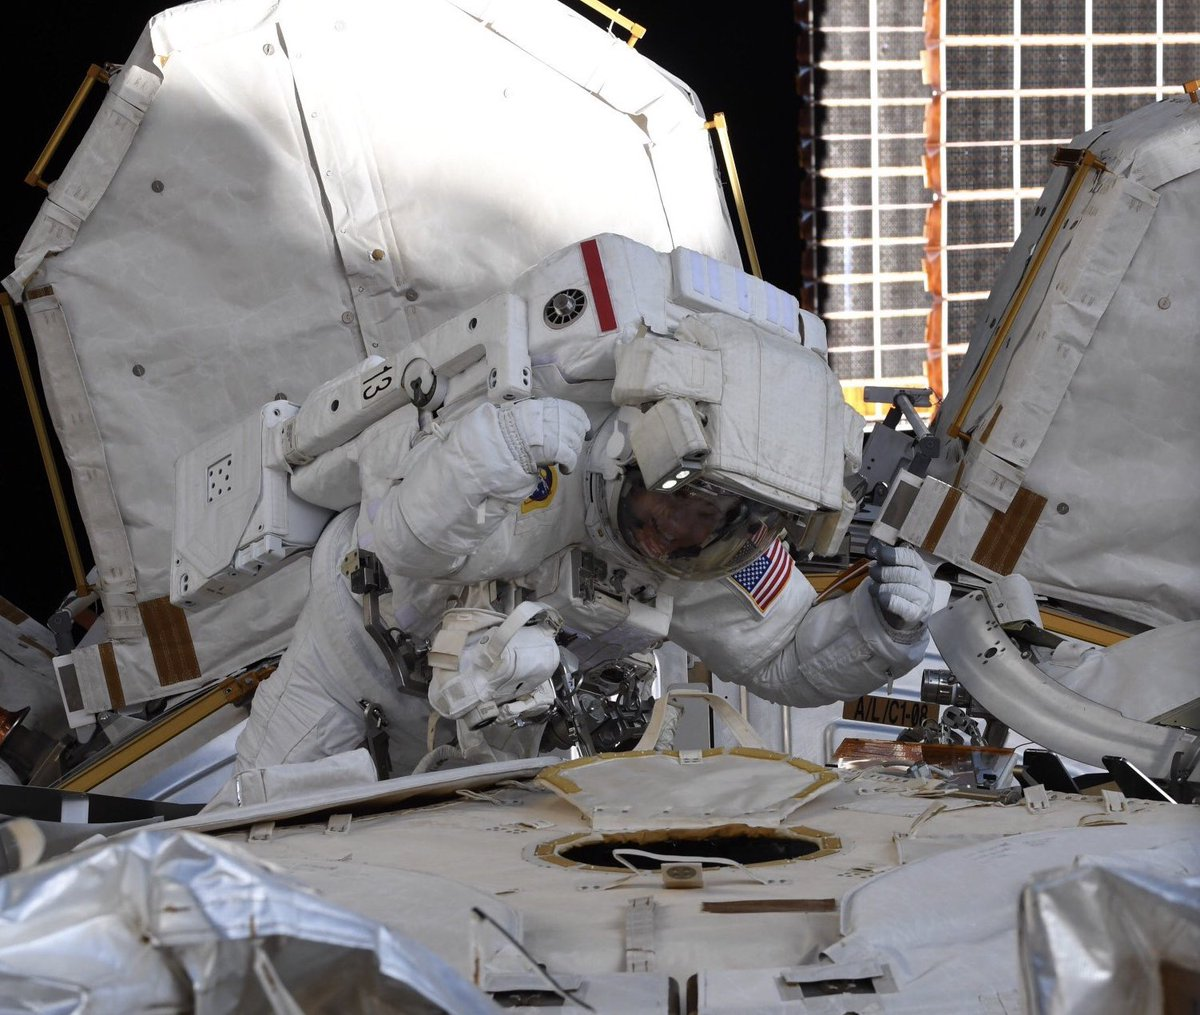 @Babak08170979 @ISS_Research EVA!! I like fixing things, solving problems and working in complicated environments while being physically/mentally challenged and relying on a big teams. EVA was all those things (amazing view included).